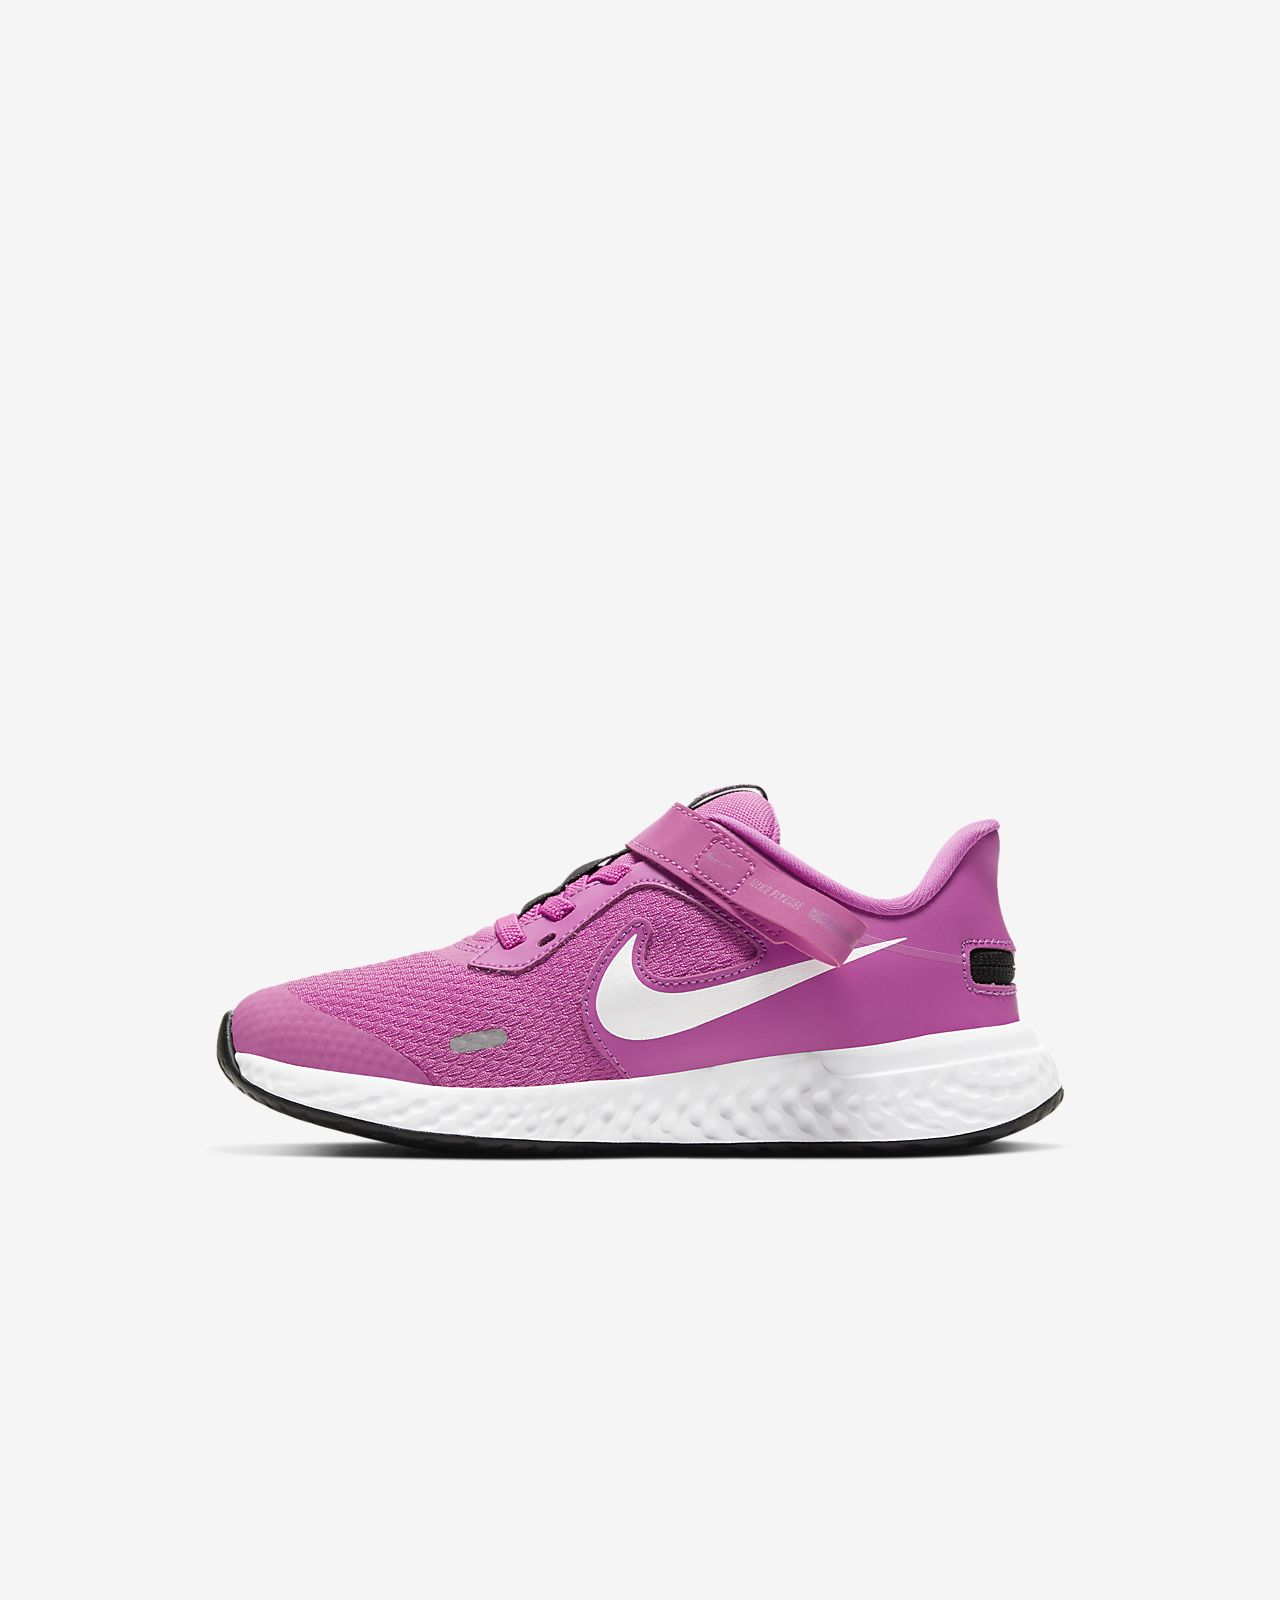 Nike Kids Shoes : Nike Shoes Sale Get Up to 50% off at